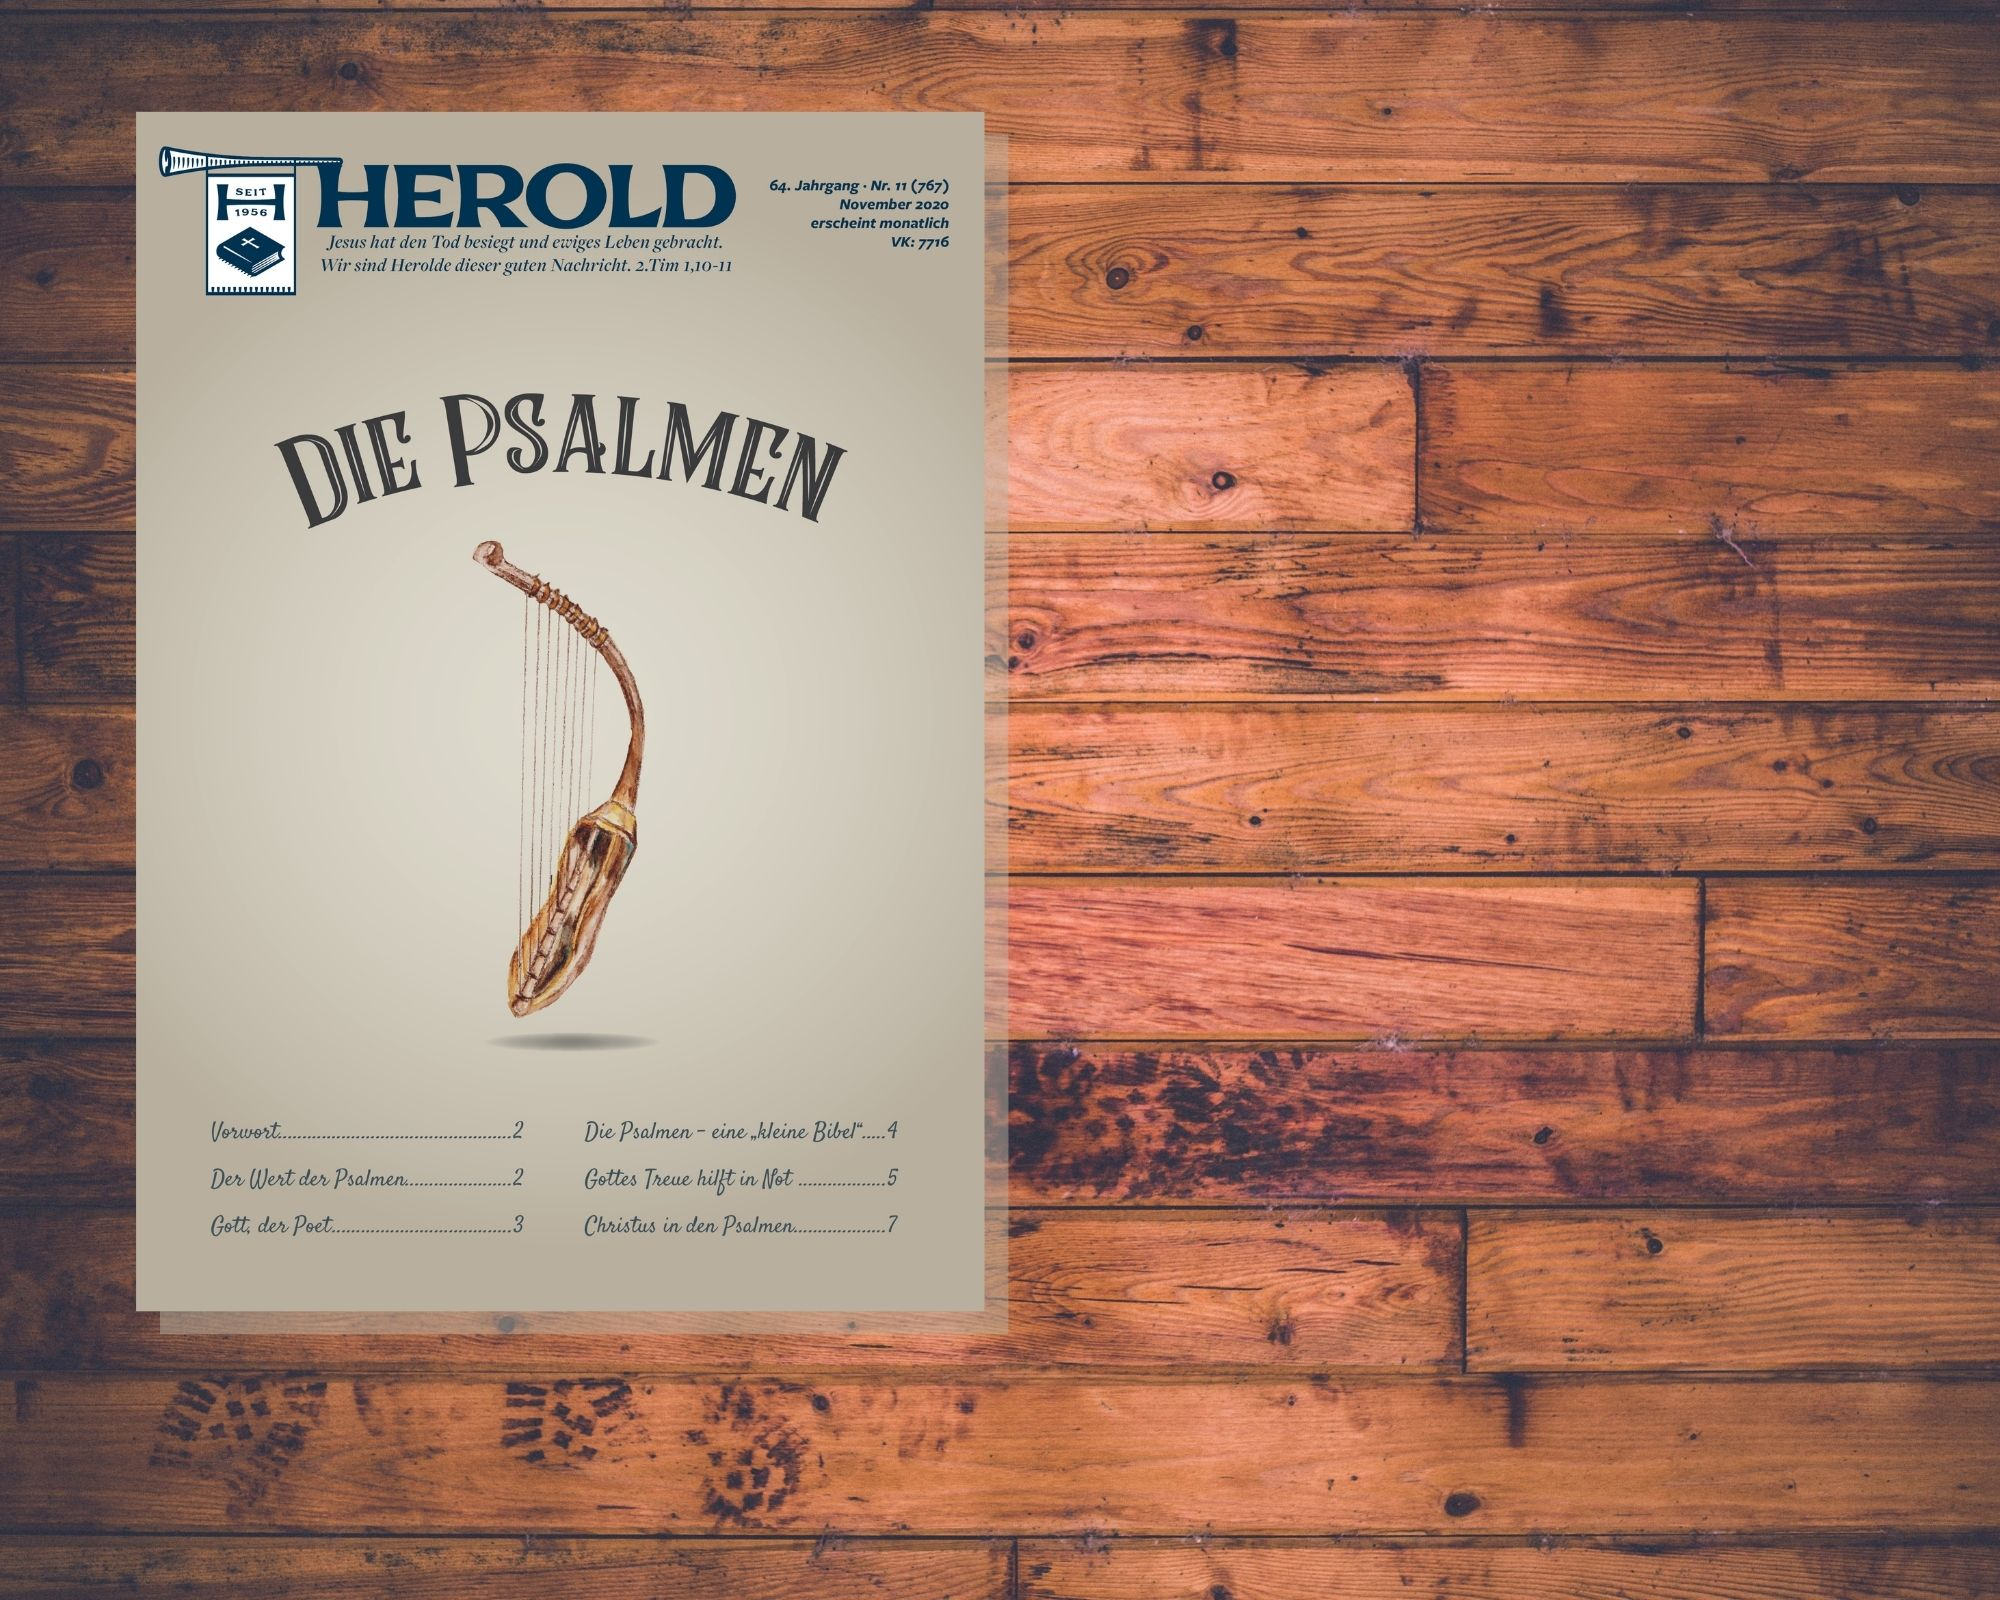 Die Psalmen – Herold November 2020